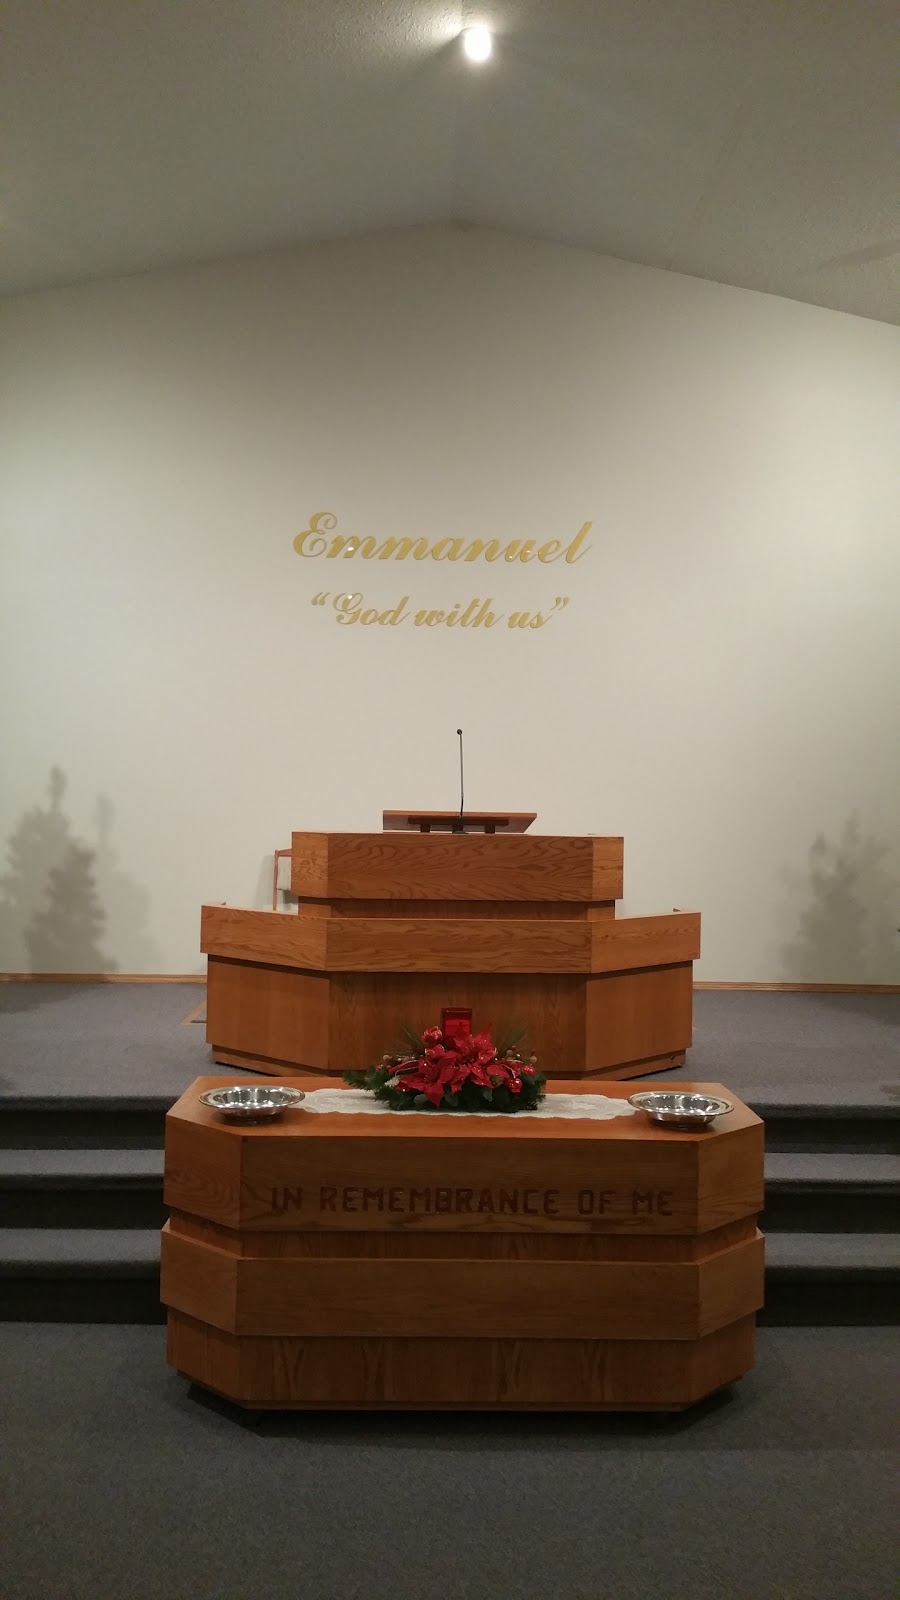 Emmanuel Baptist Church | church | 239 17 Ave E, Three Hills, AB T0M 2A0, Canada | 4039243004 OR +1 403-924-3004